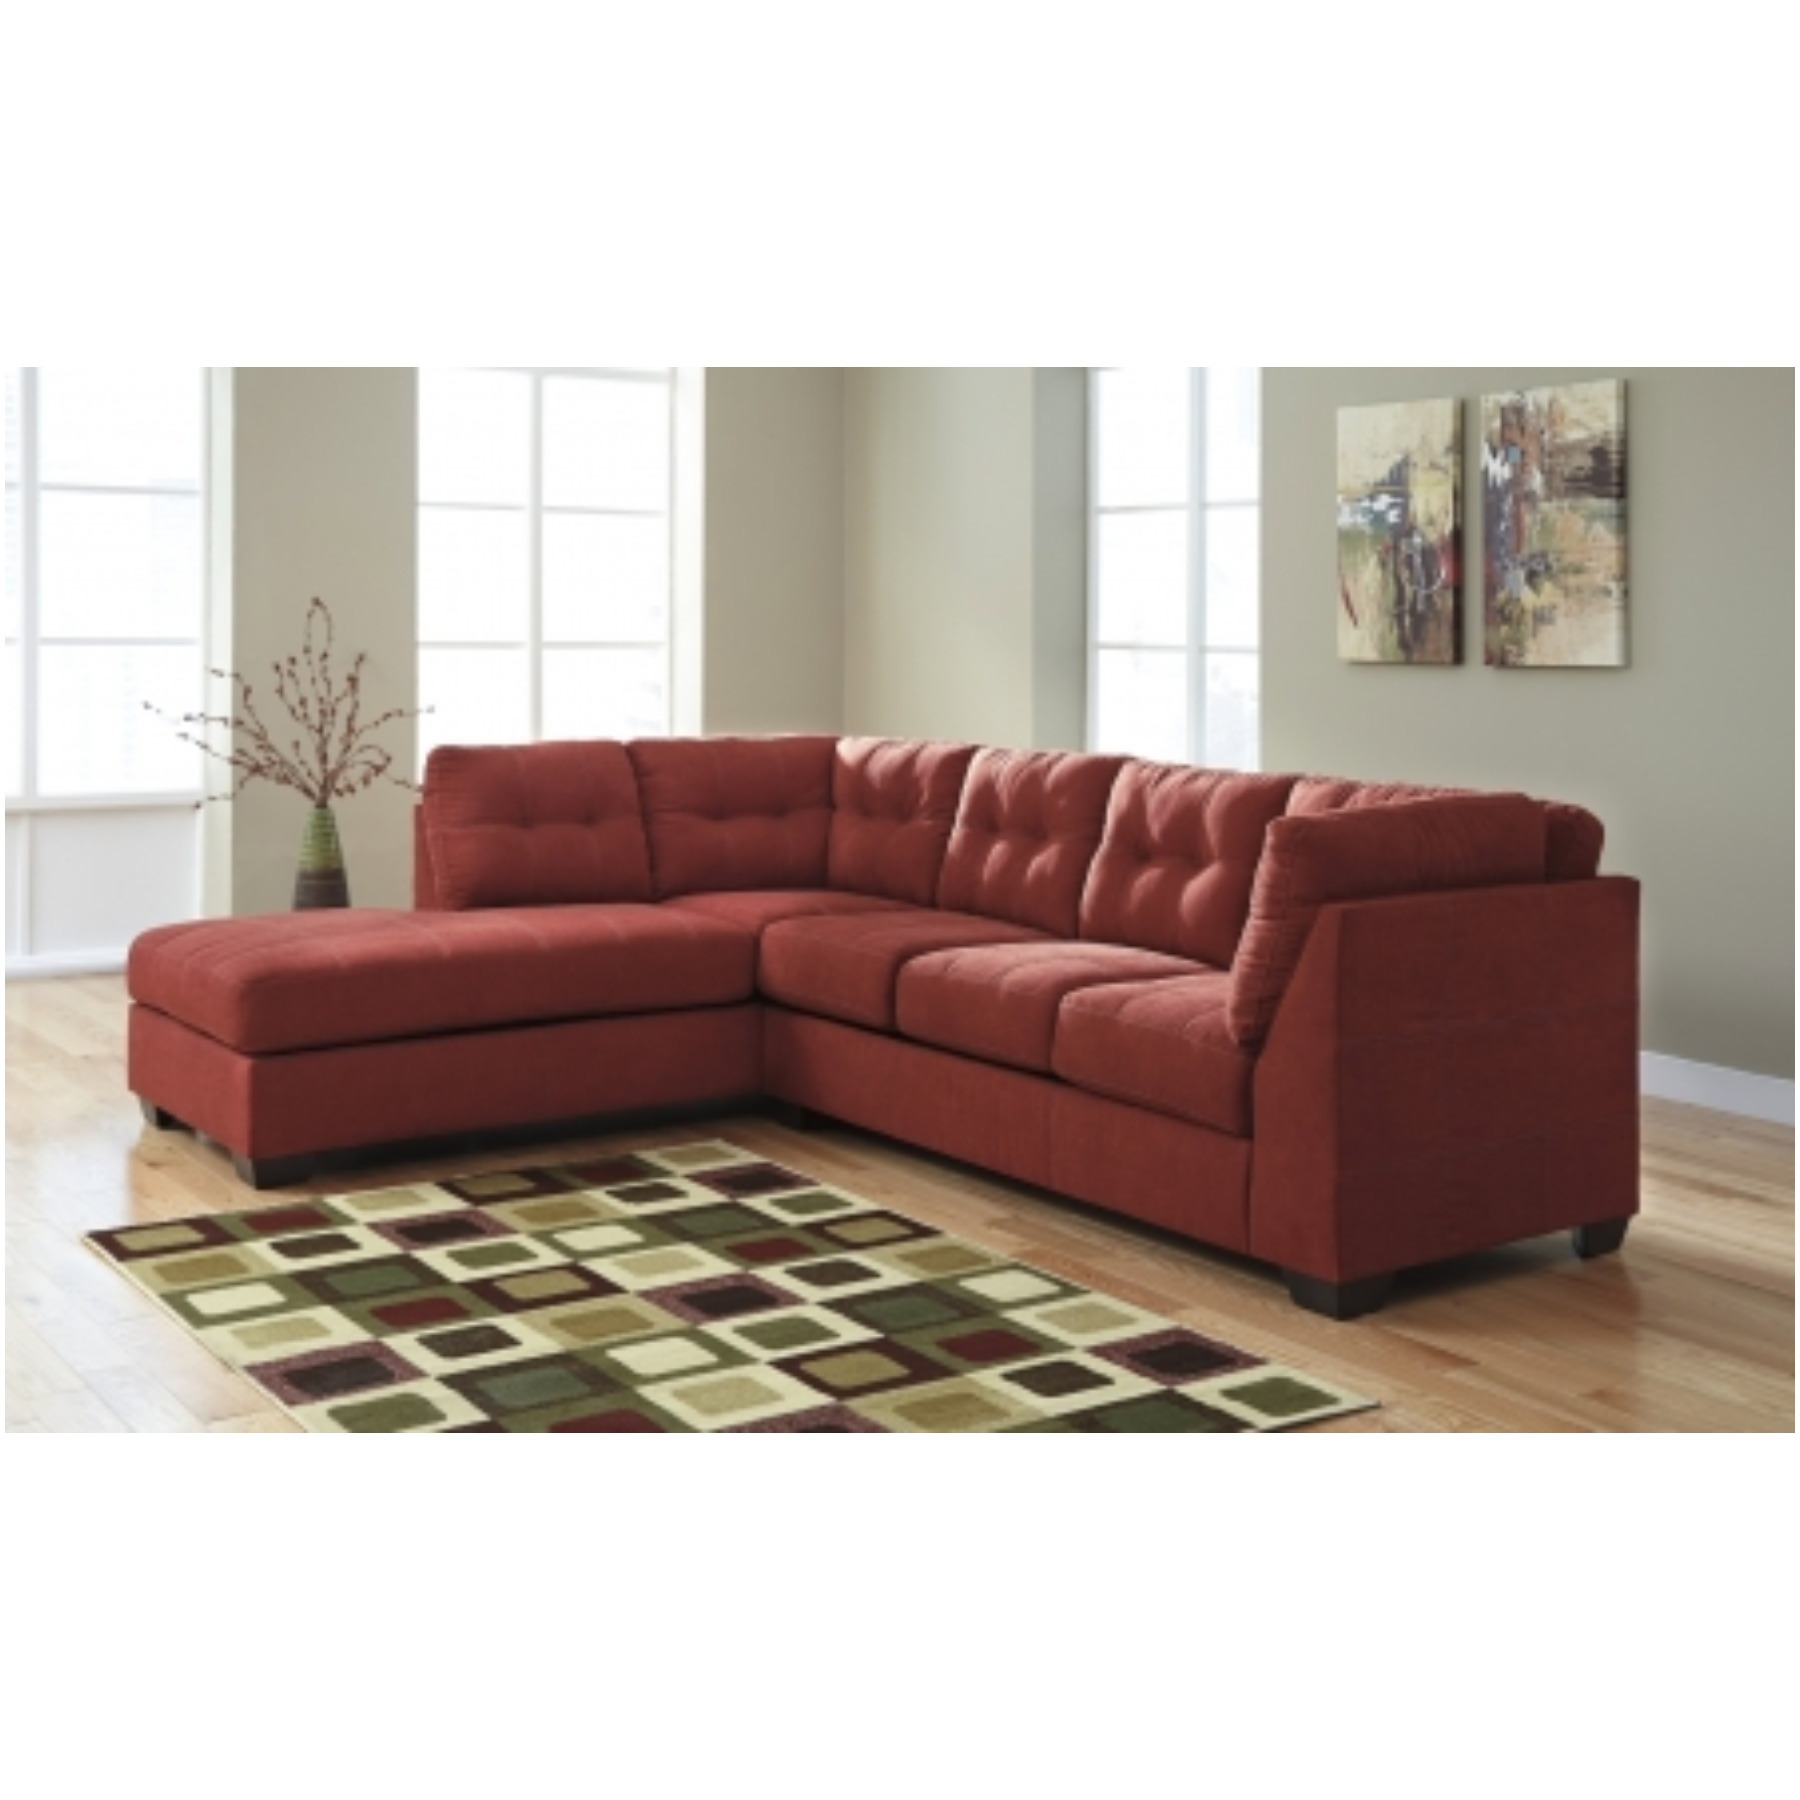 12 ideas of american made sectional sofas. Black Bedroom Furniture Sets. Home Design Ideas